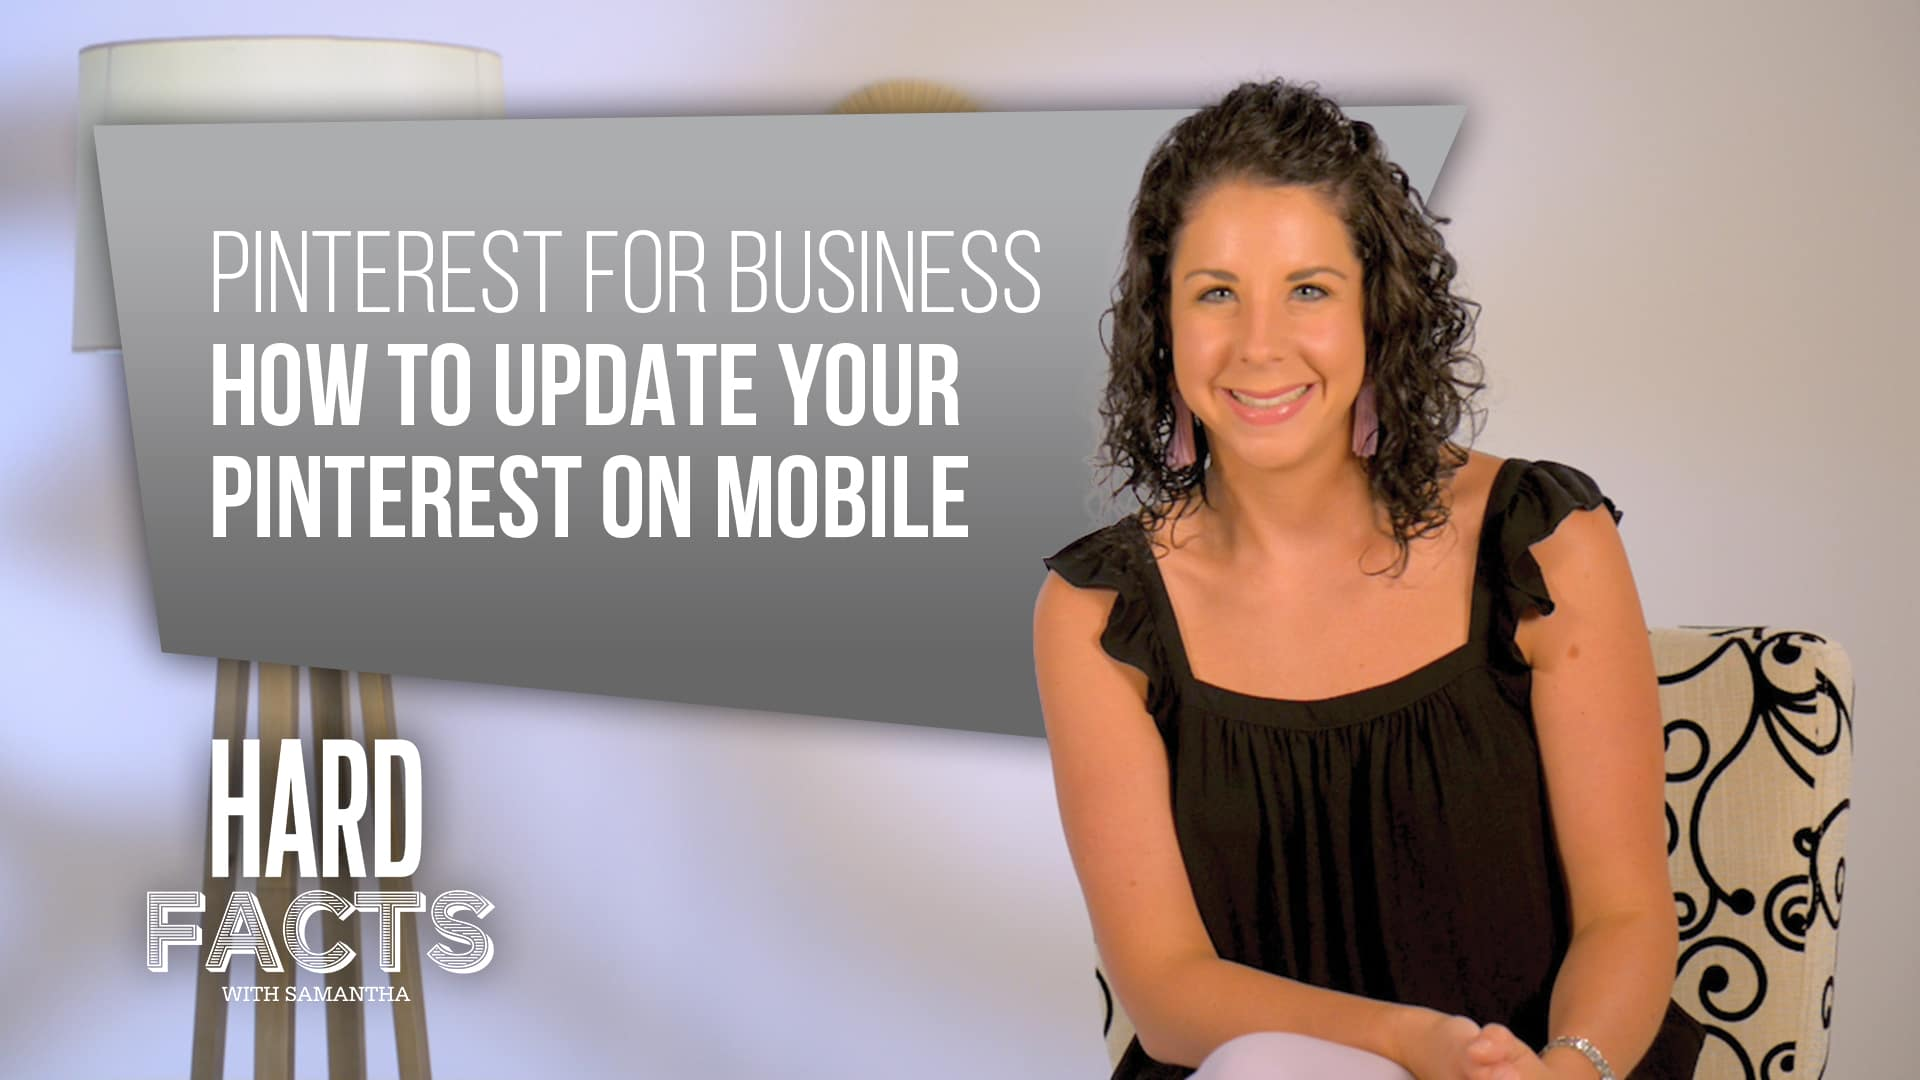 Pinterest for Business – How to Update Your Pinterest on Mobile